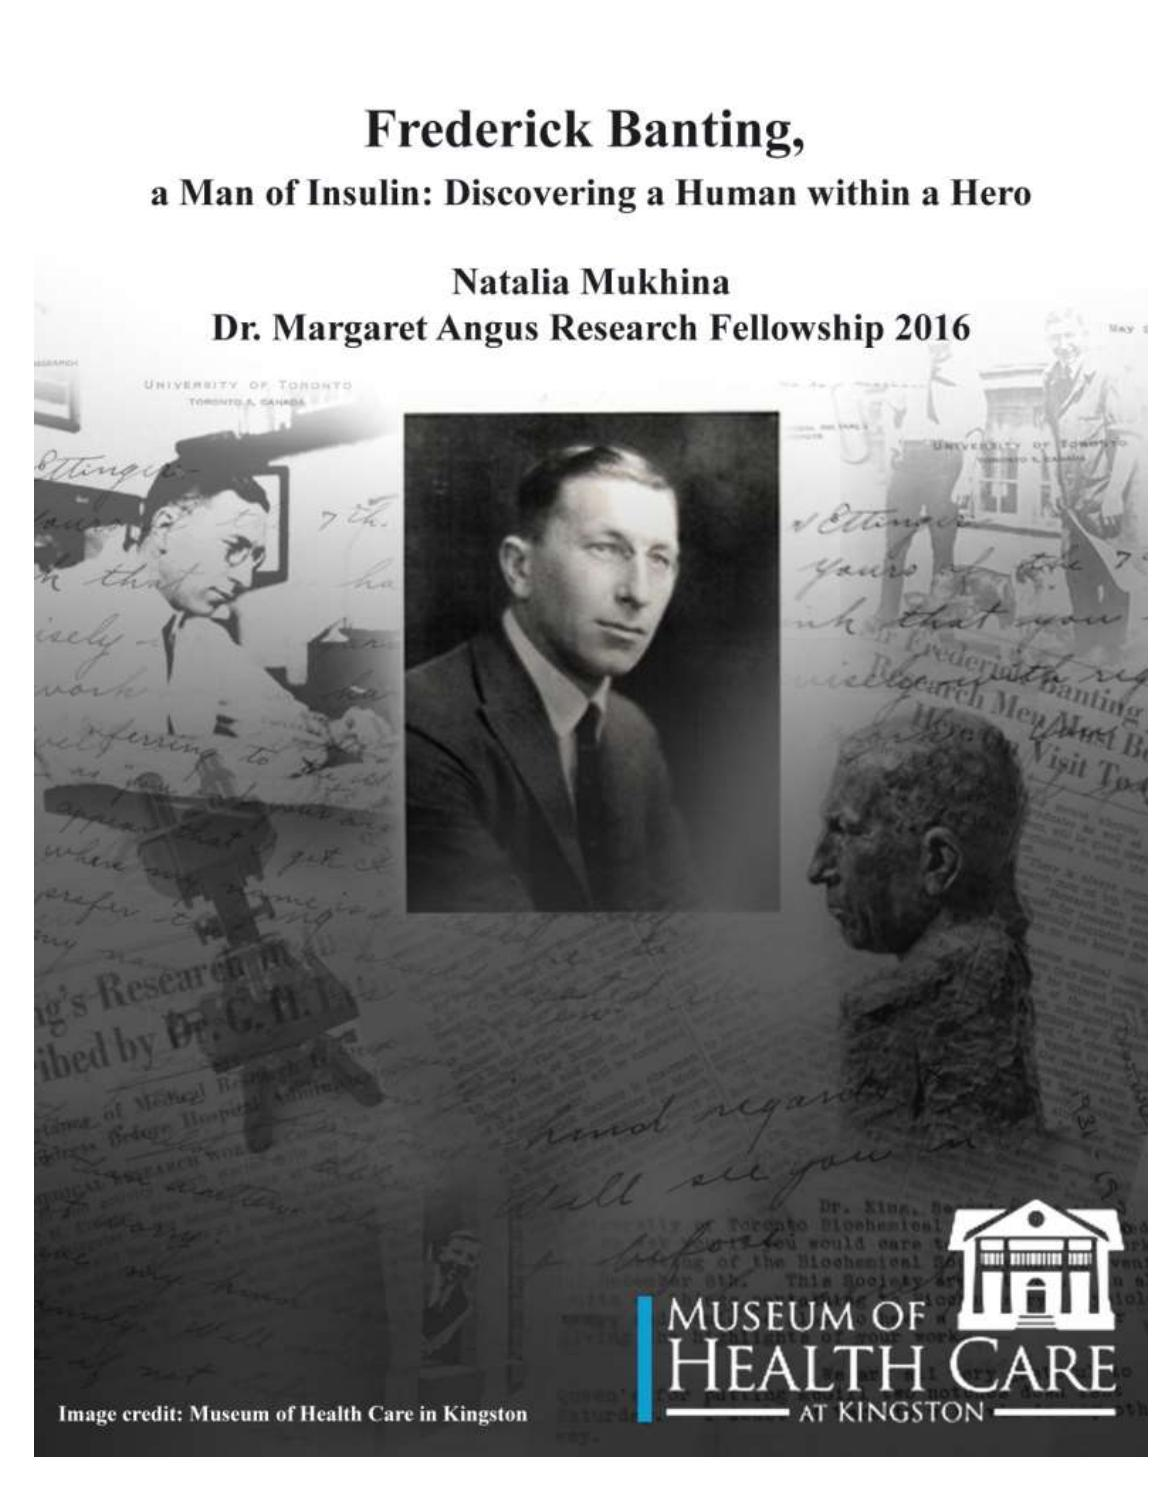 Frederick Banting, a Man of Insulin: Discovering a Human within a Hero by  Museum of Health Care - issuu